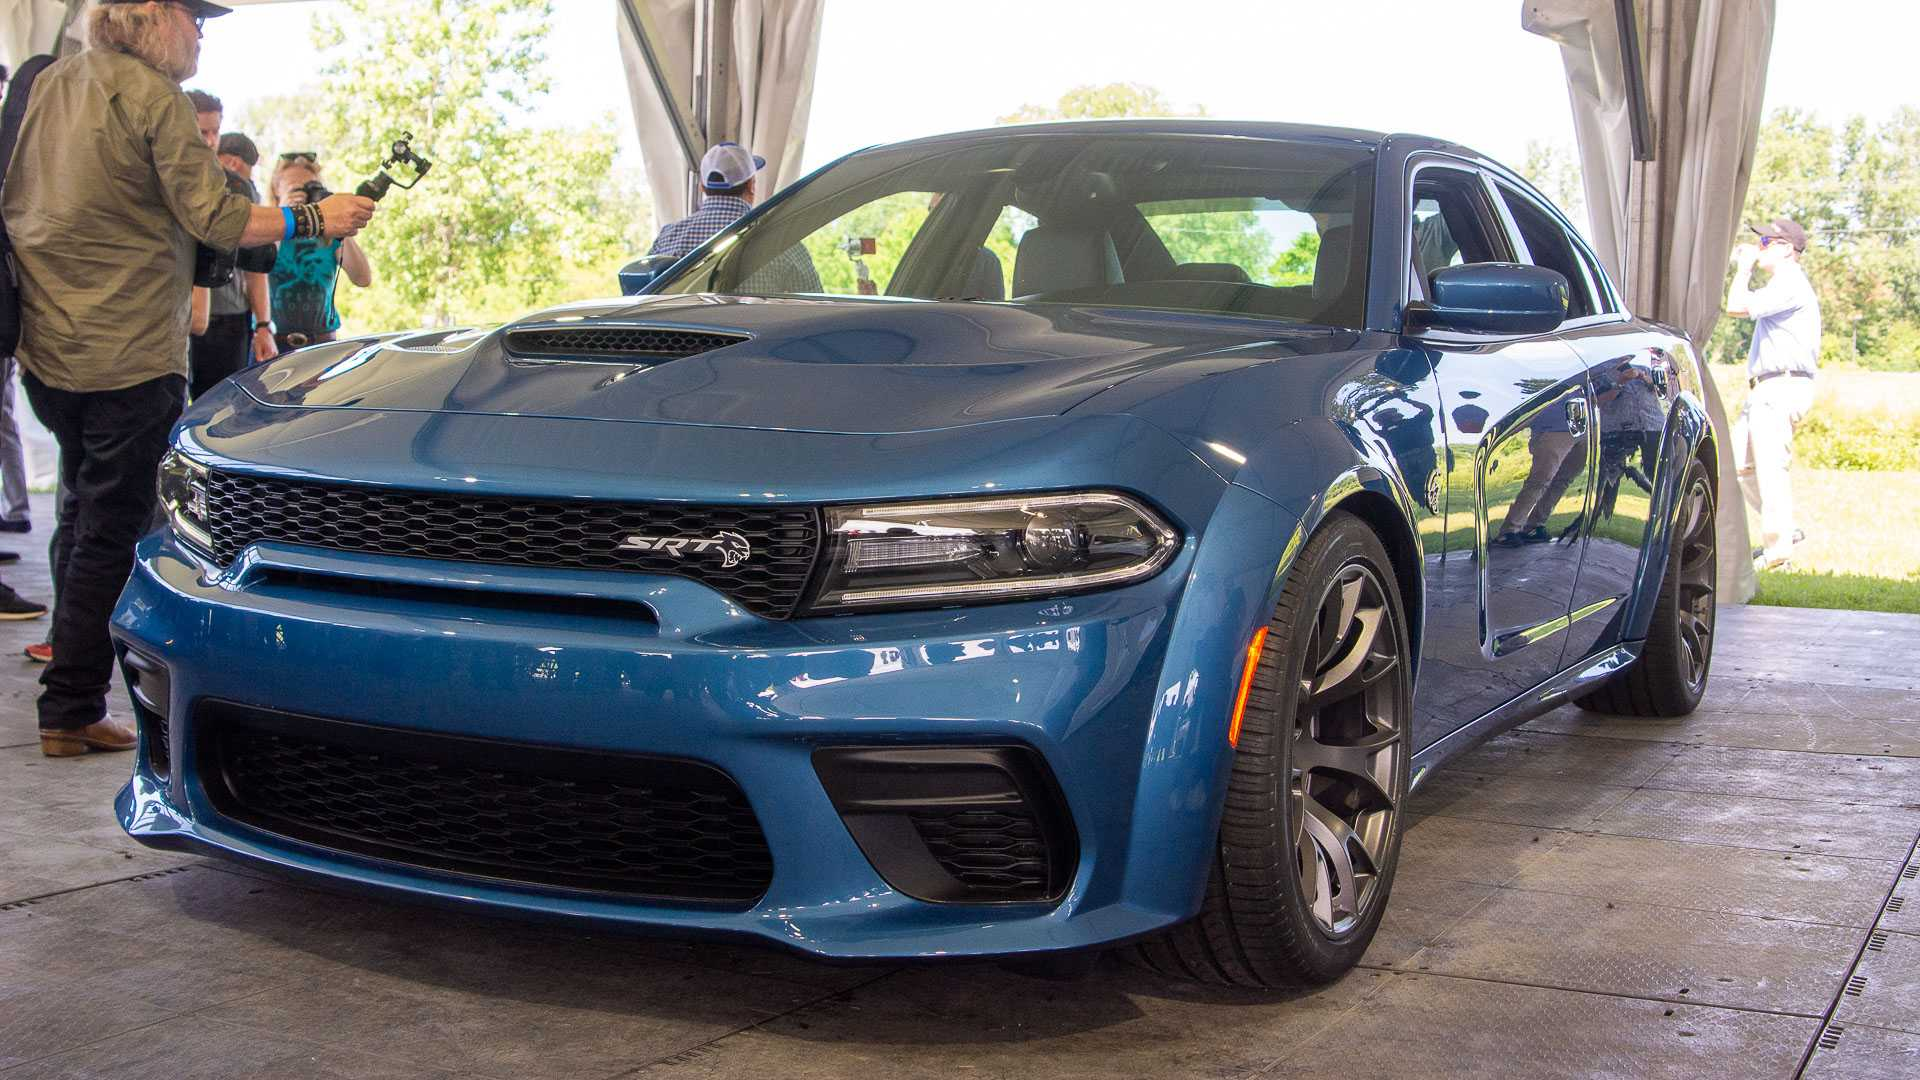 82 Best Review 2020 Dodge Charger Engine Ratings by 2020 Dodge Charger Engine